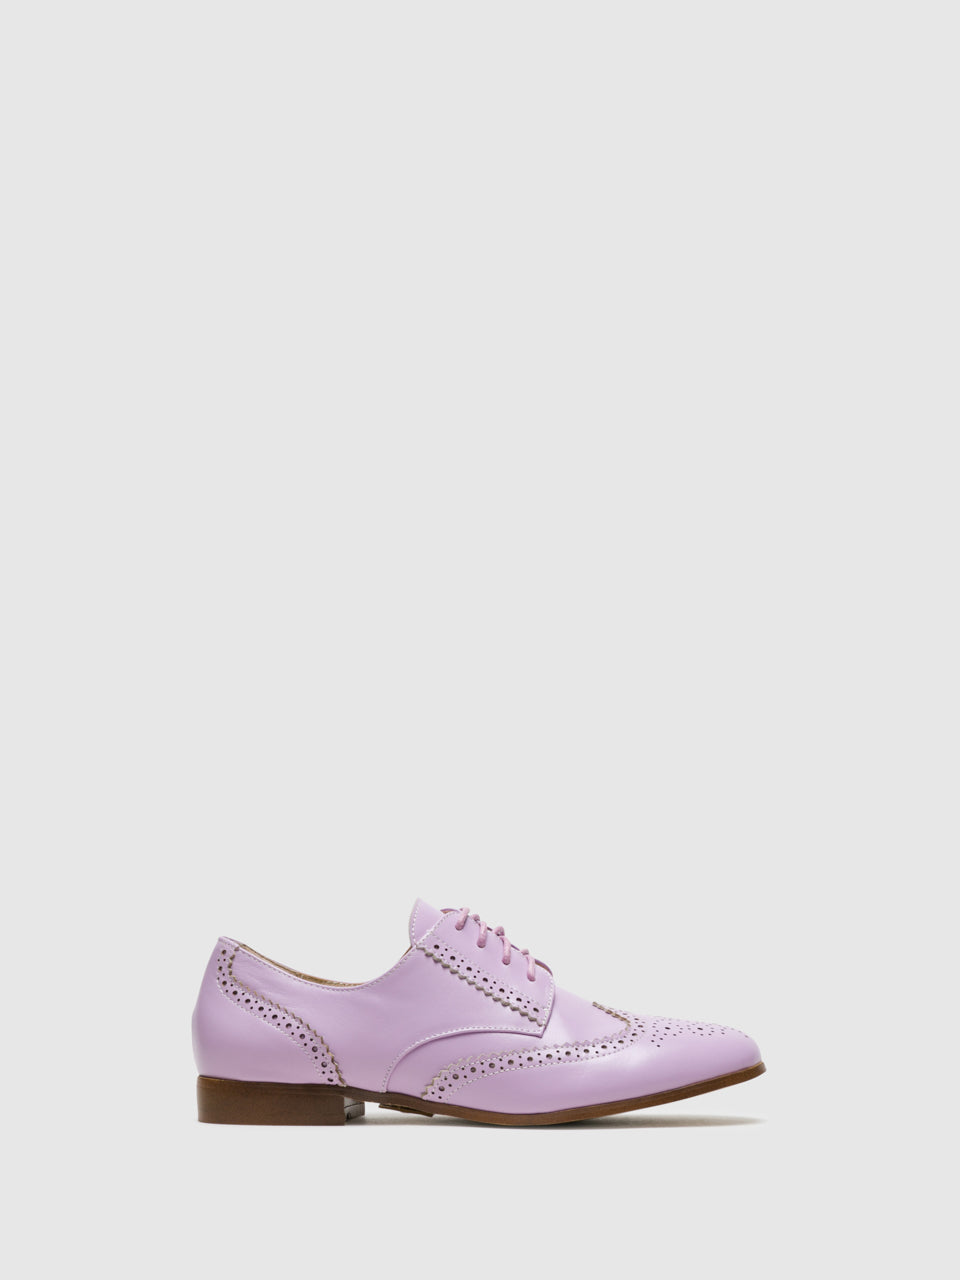 Yull Zapatos Oxford en color Morado